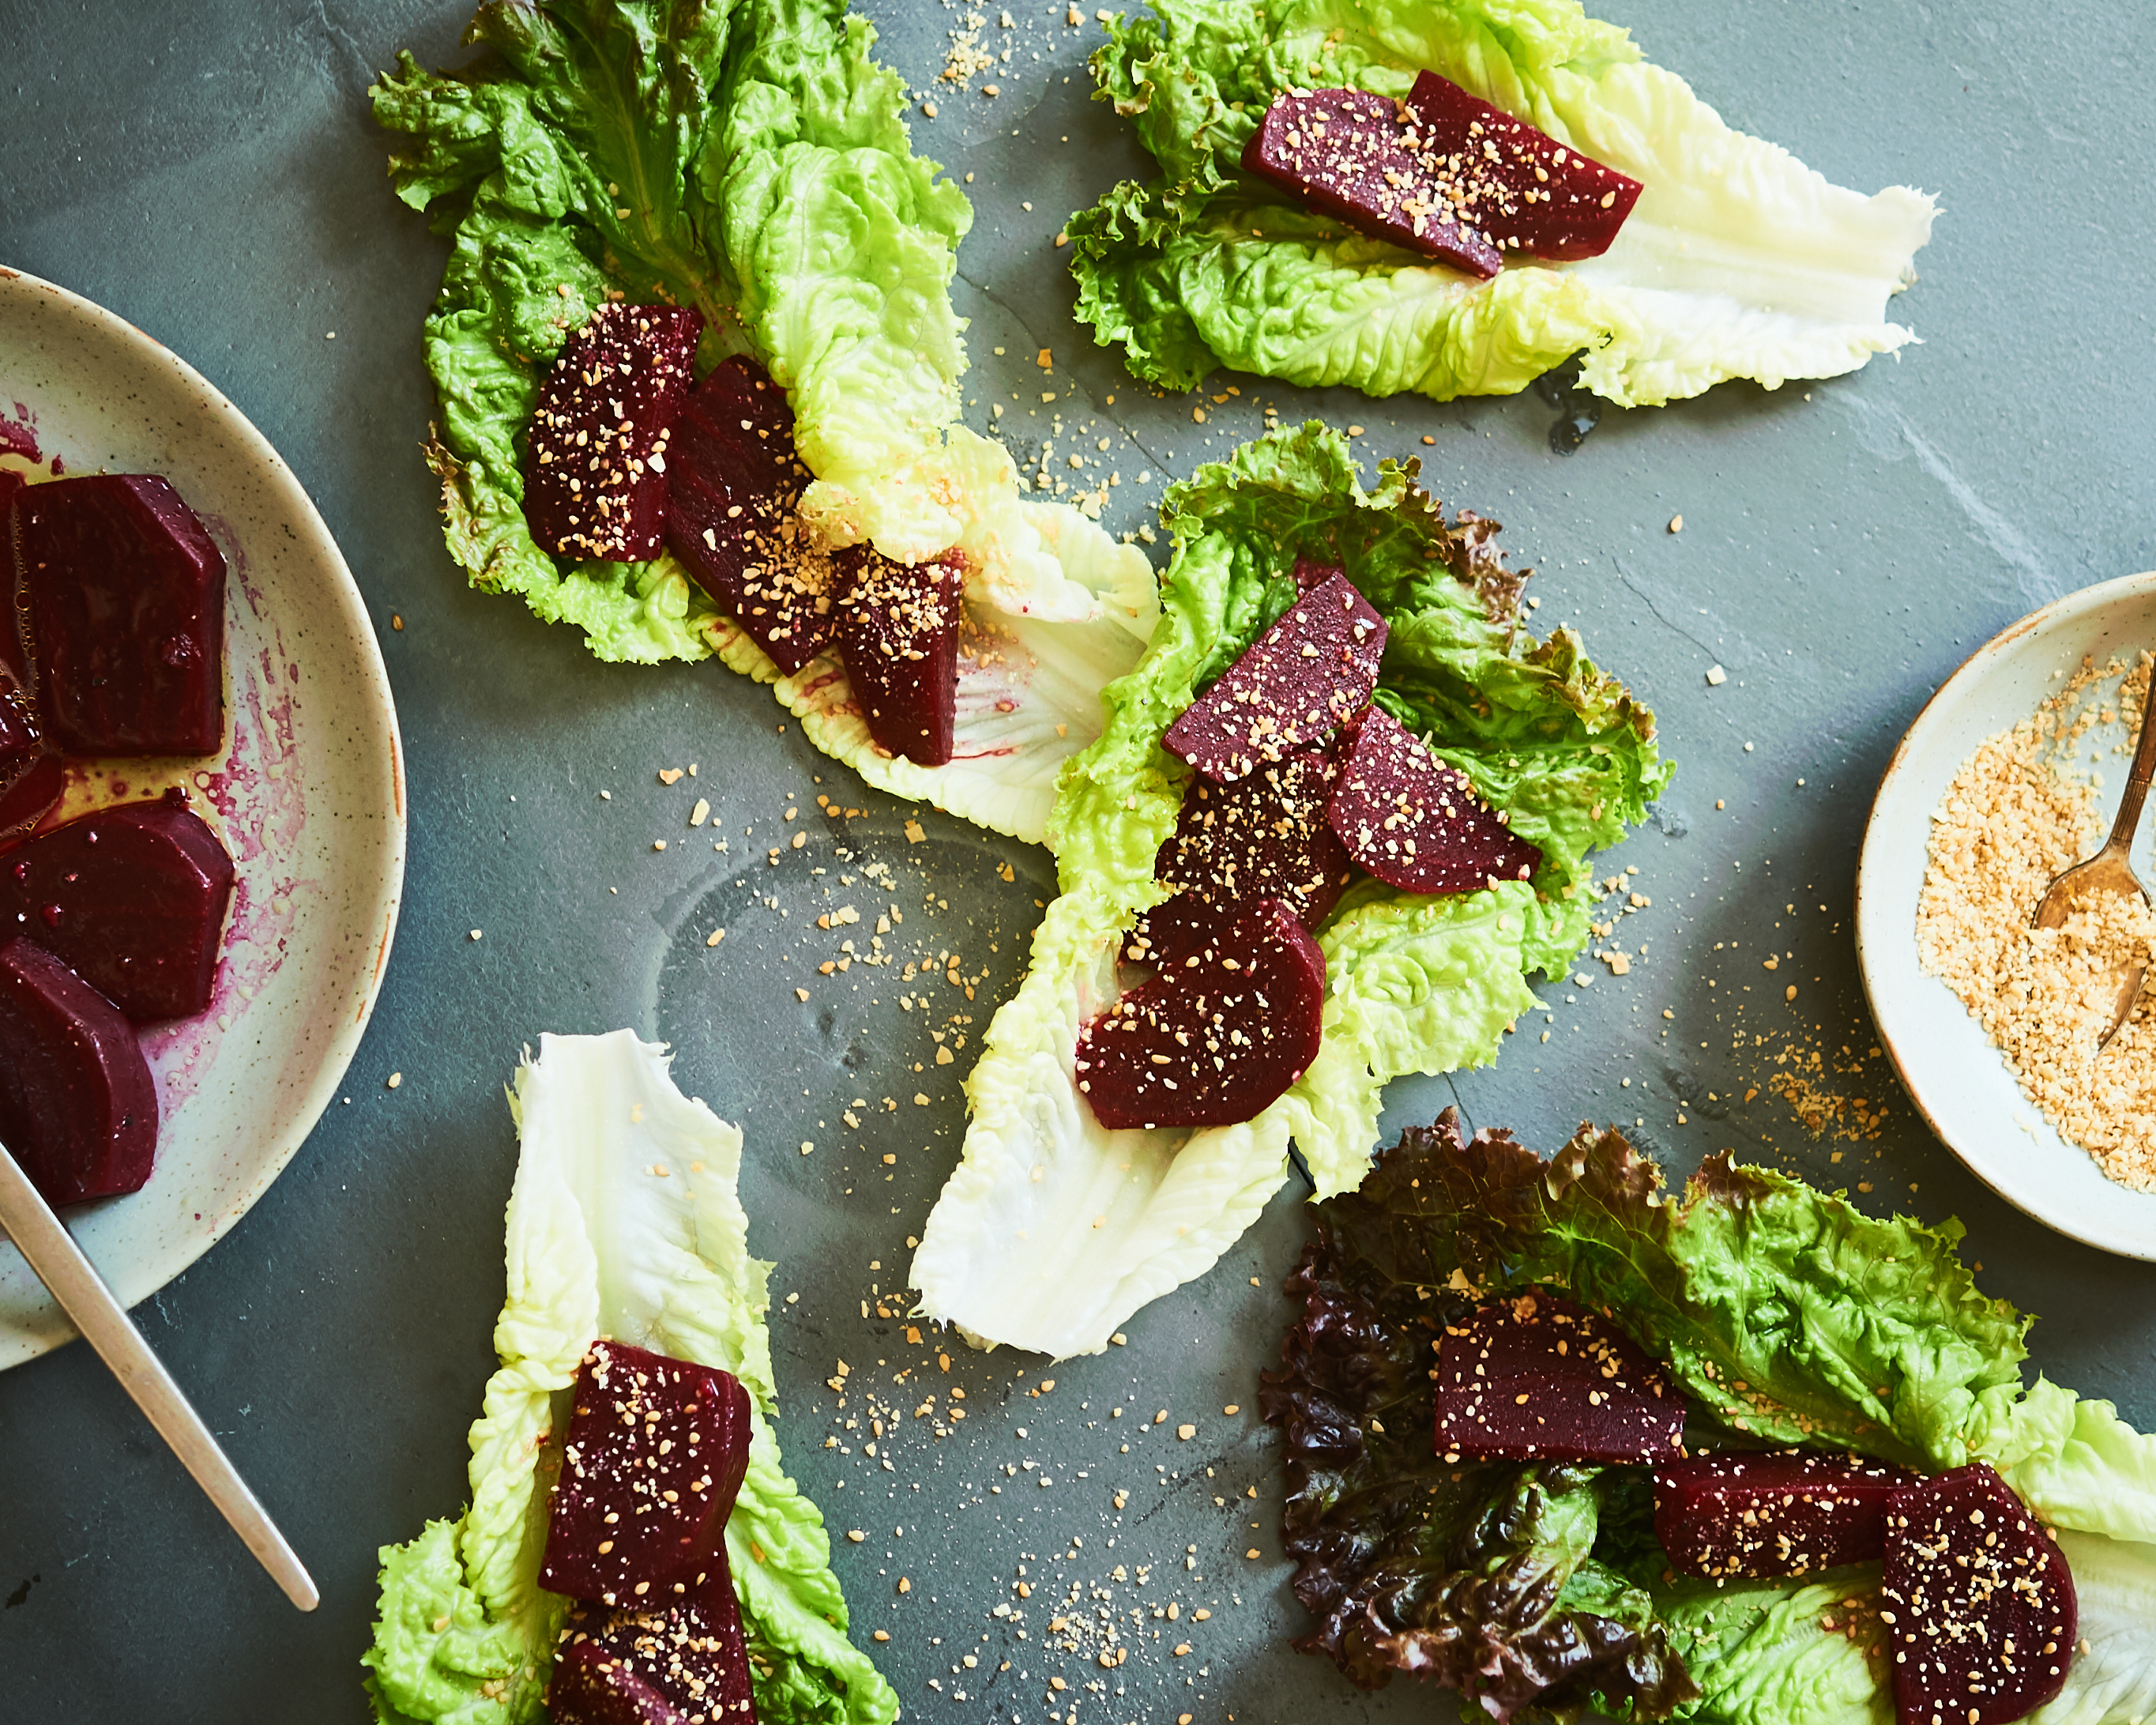 This salad is made with marinated beets and sesame seeds and lettuce leaves and slivered almonds.